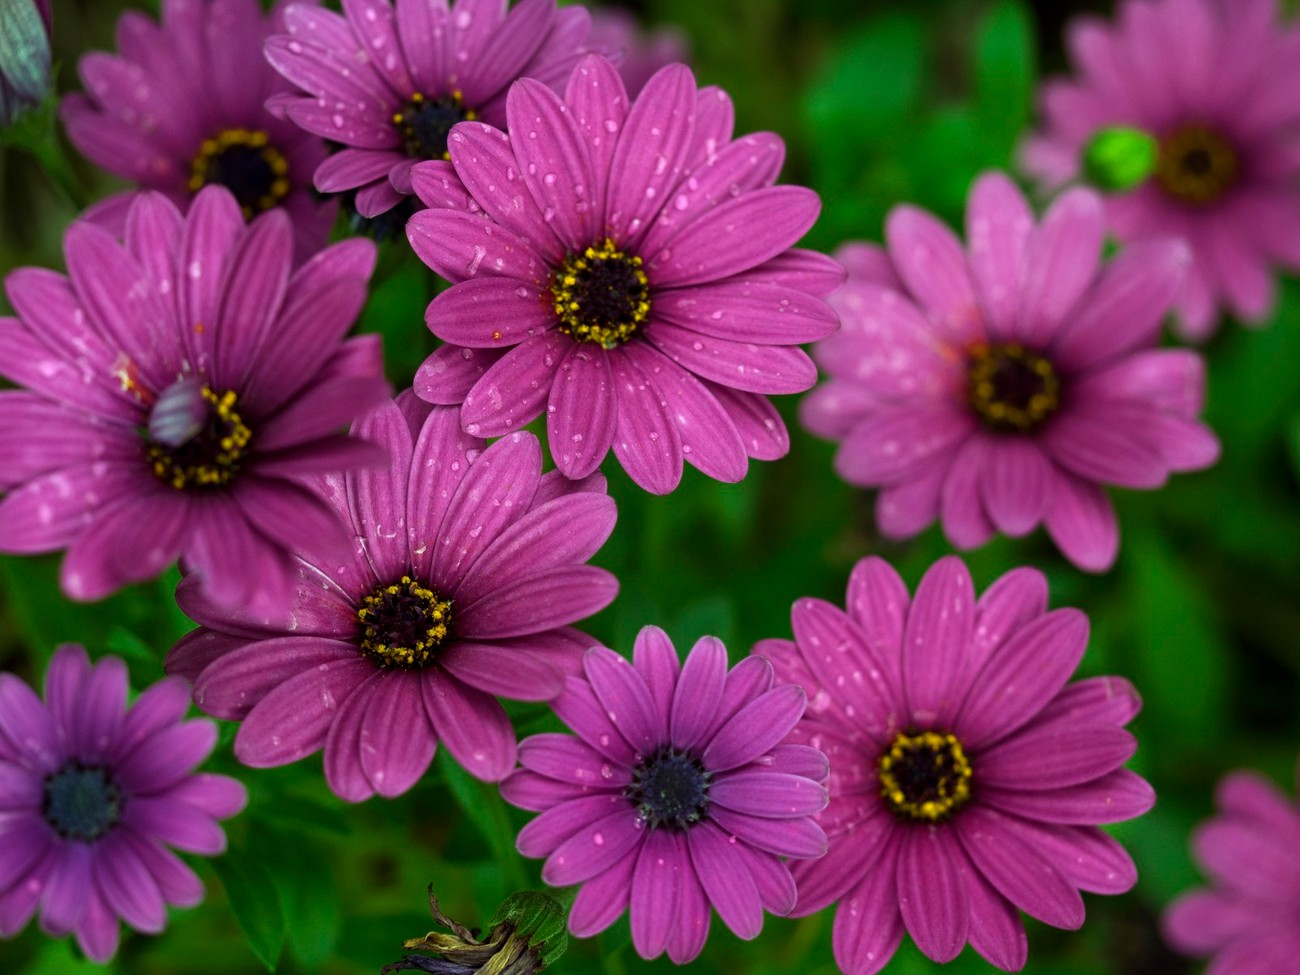 Just some purple daisys in macro